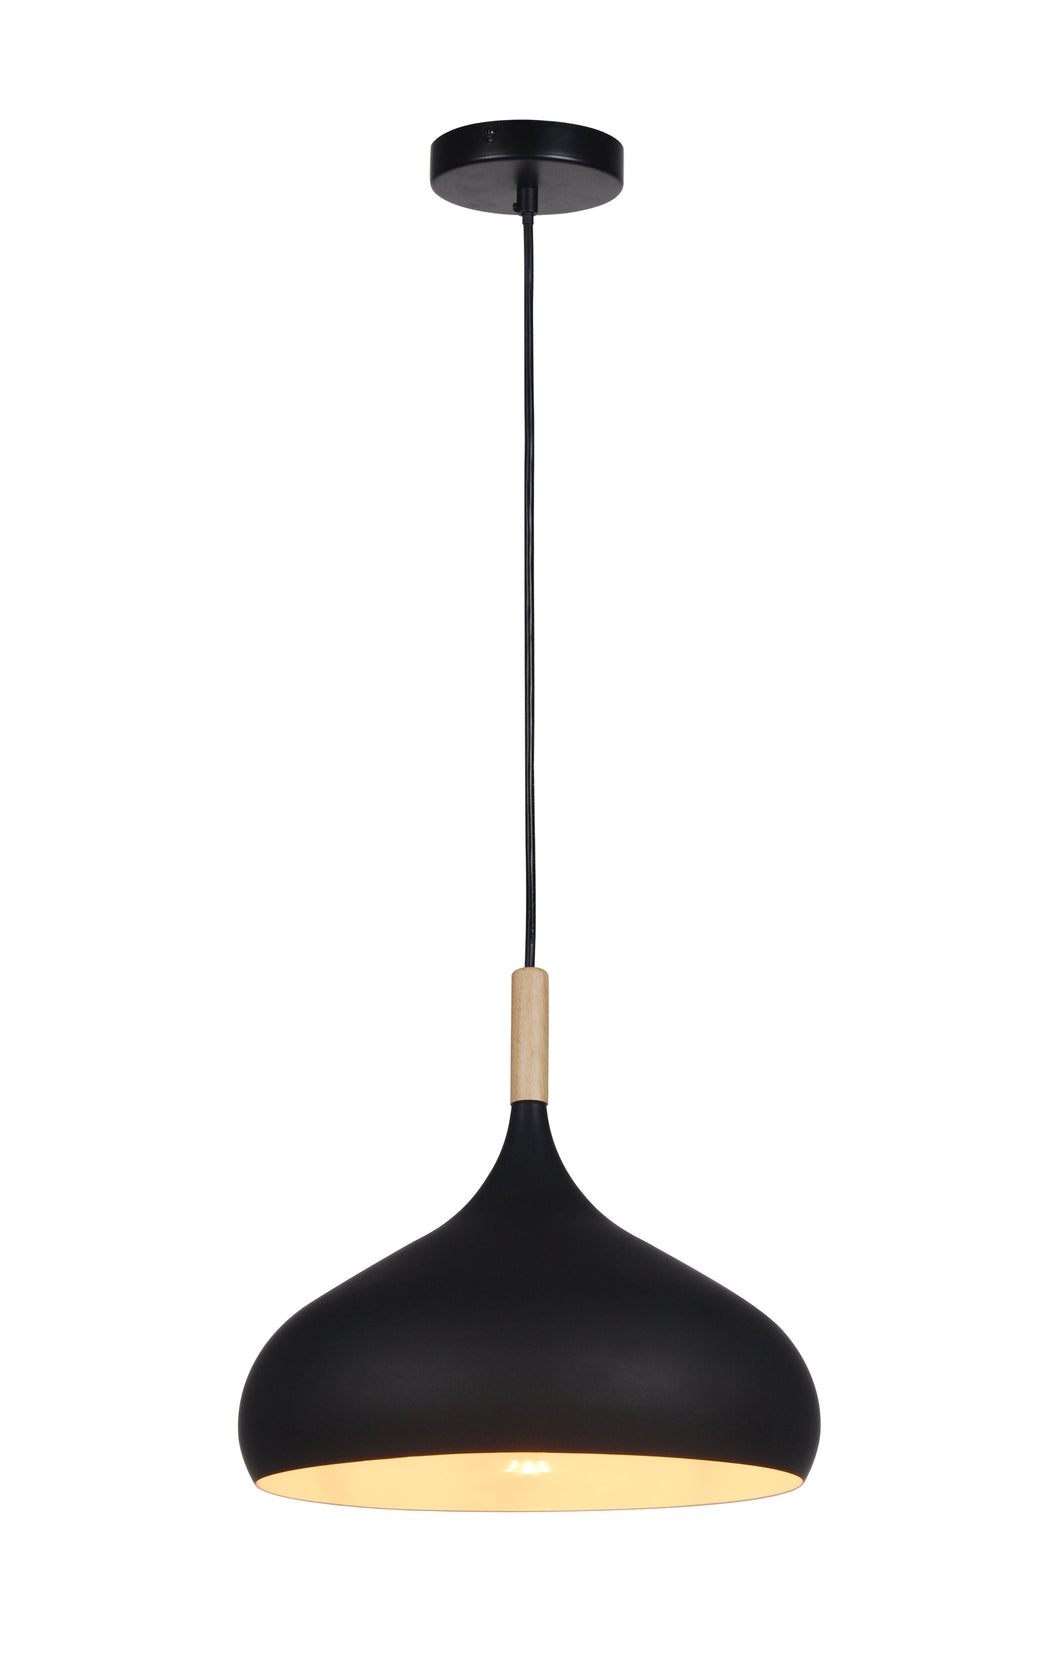 13.5 inch Black Aluminum Pendant Light